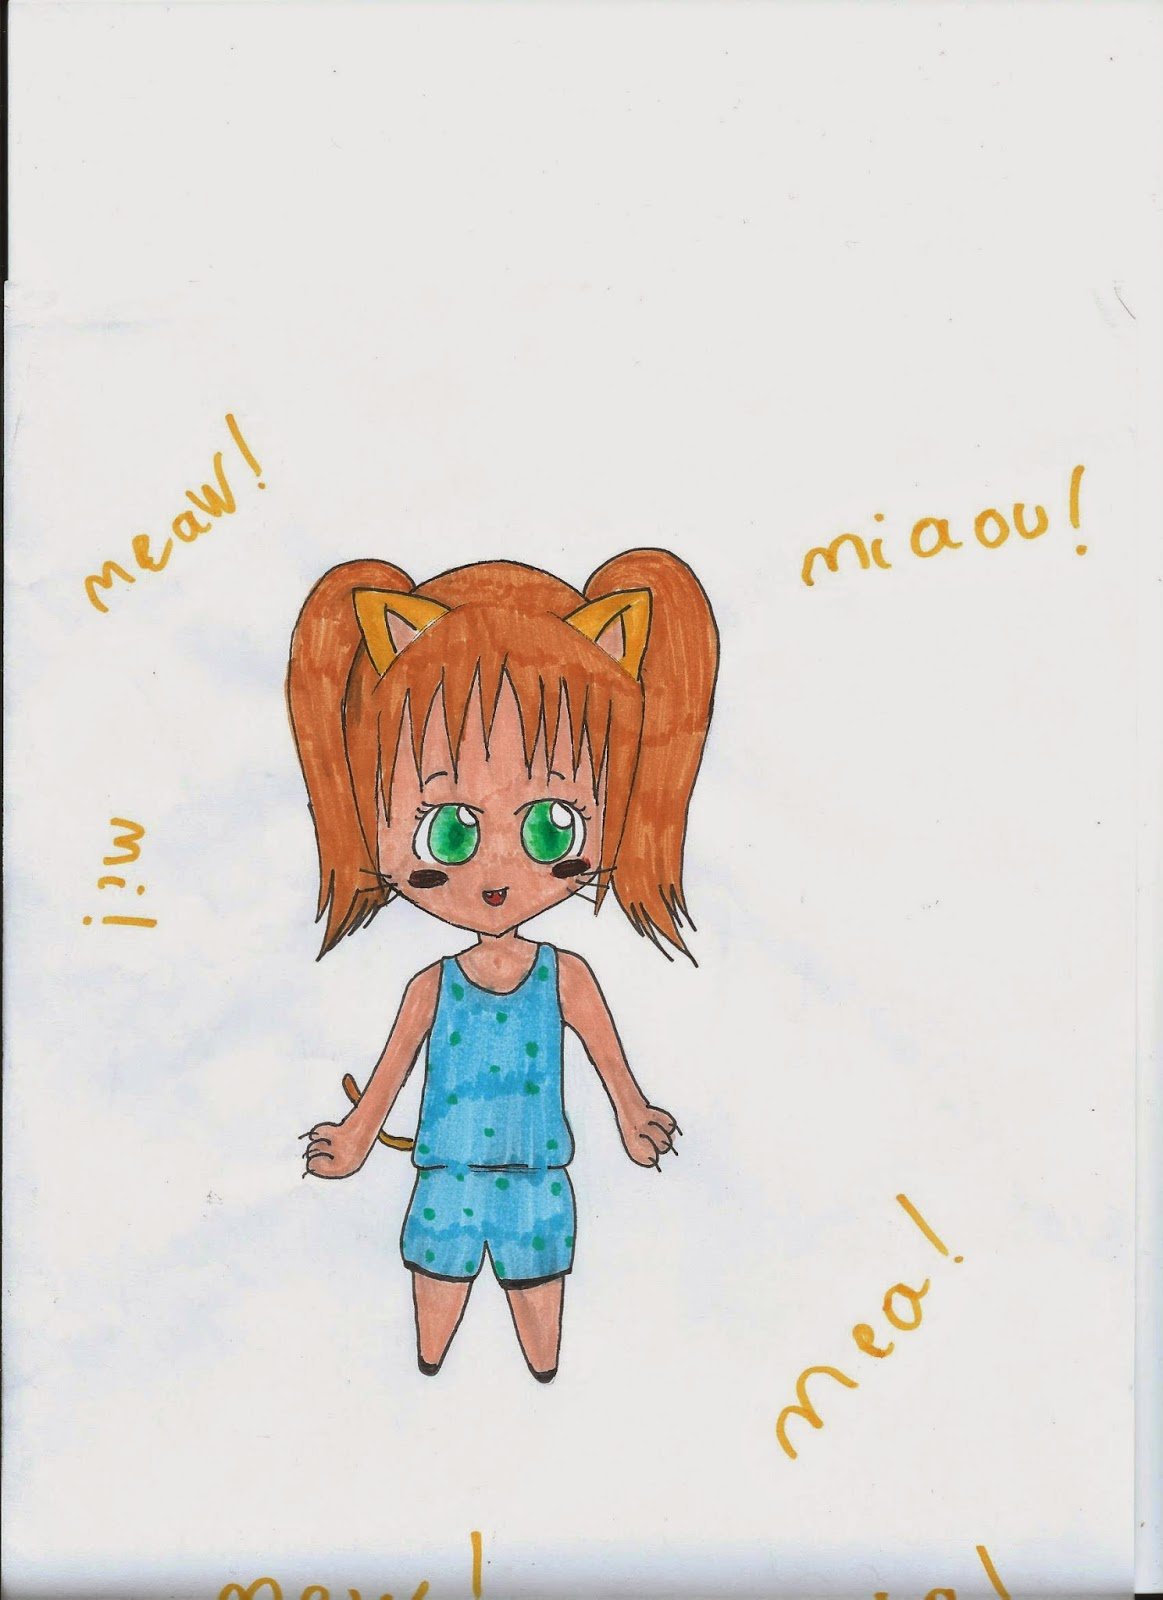 Dessin Mangas Dessin 31 Chibi Fille Chat